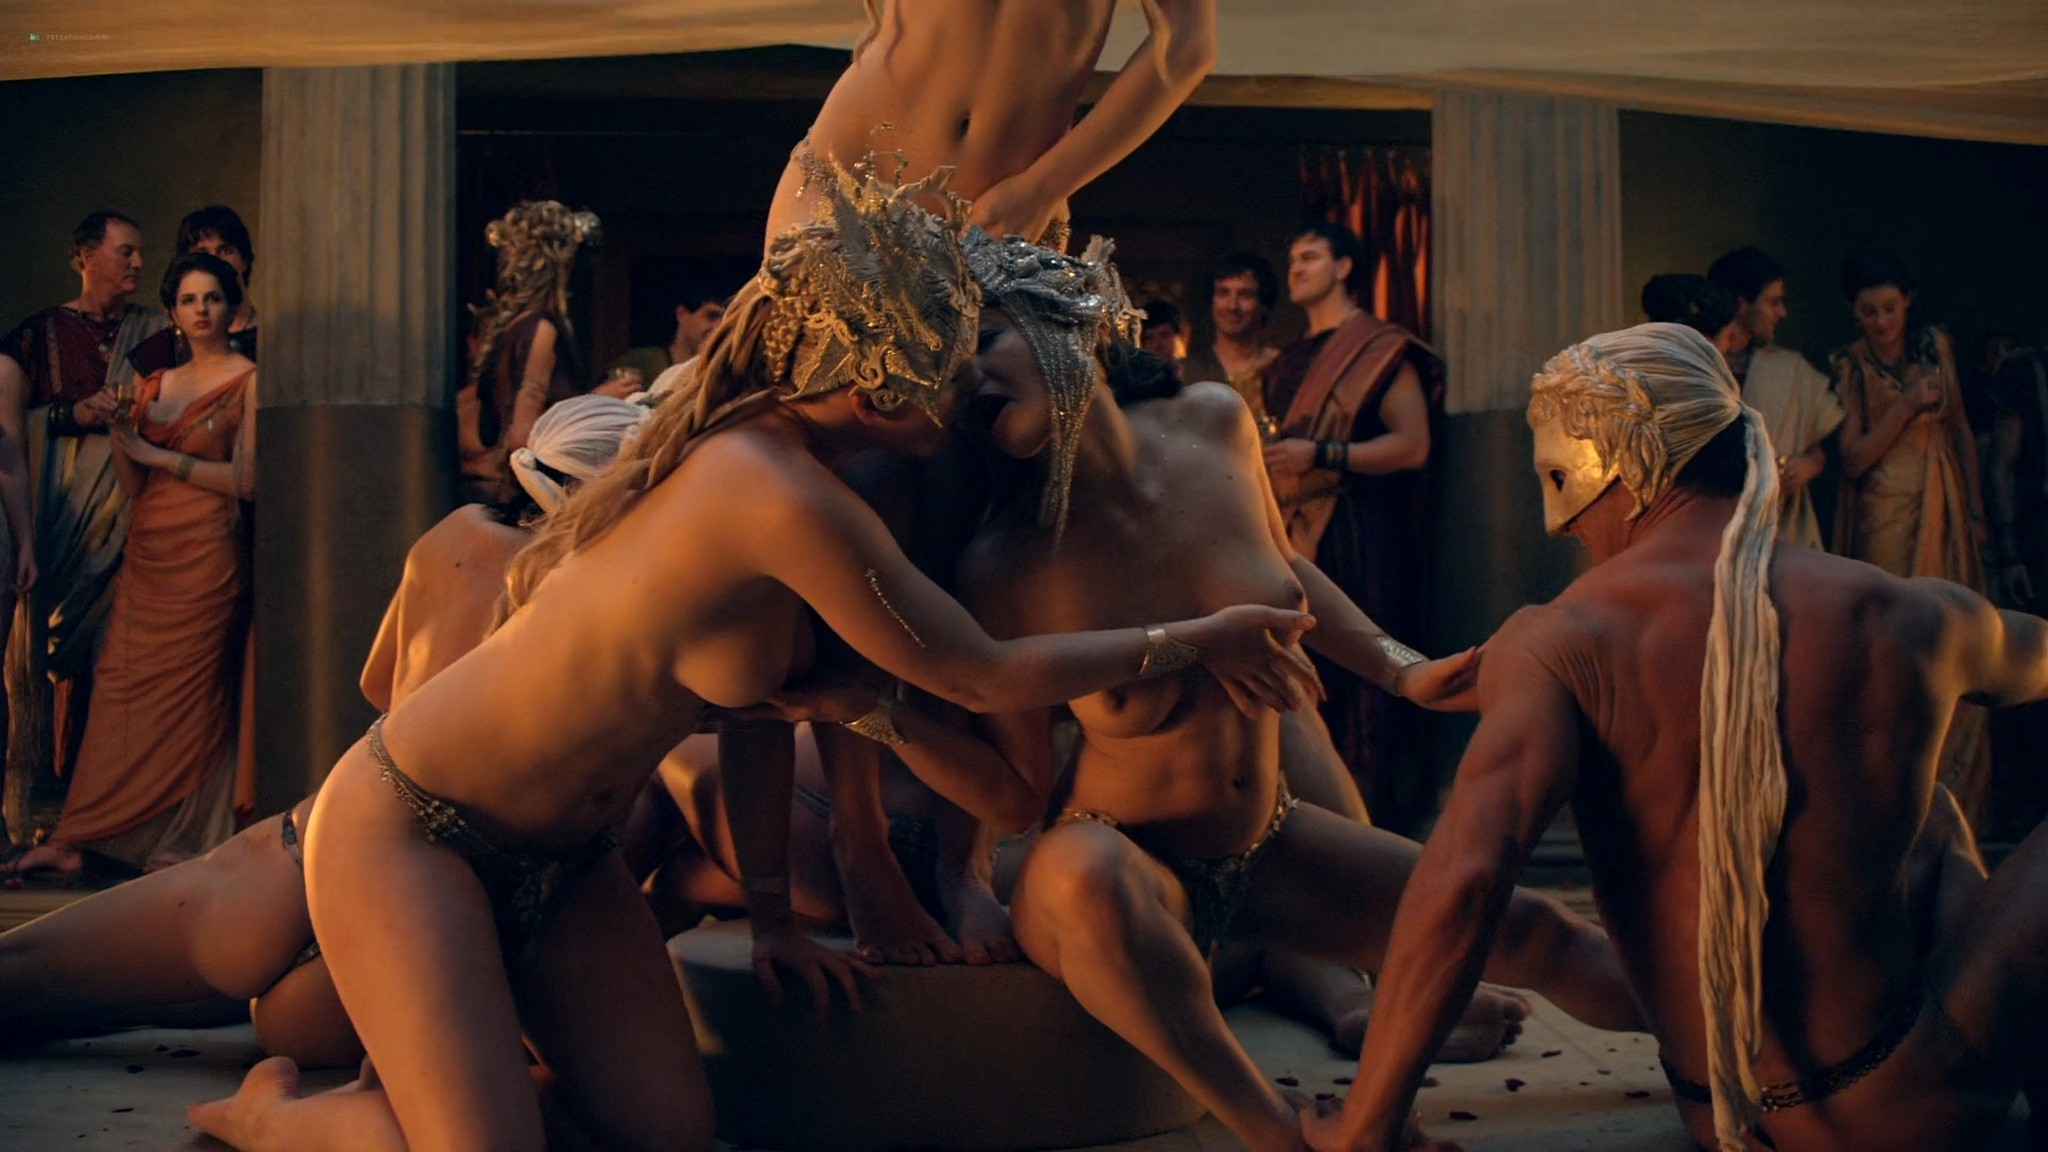 Viva Bianca nude Lucy Lawless nude sex others nude - Spartacus - Vengeance (2012) e4 1080p BluRay (10)